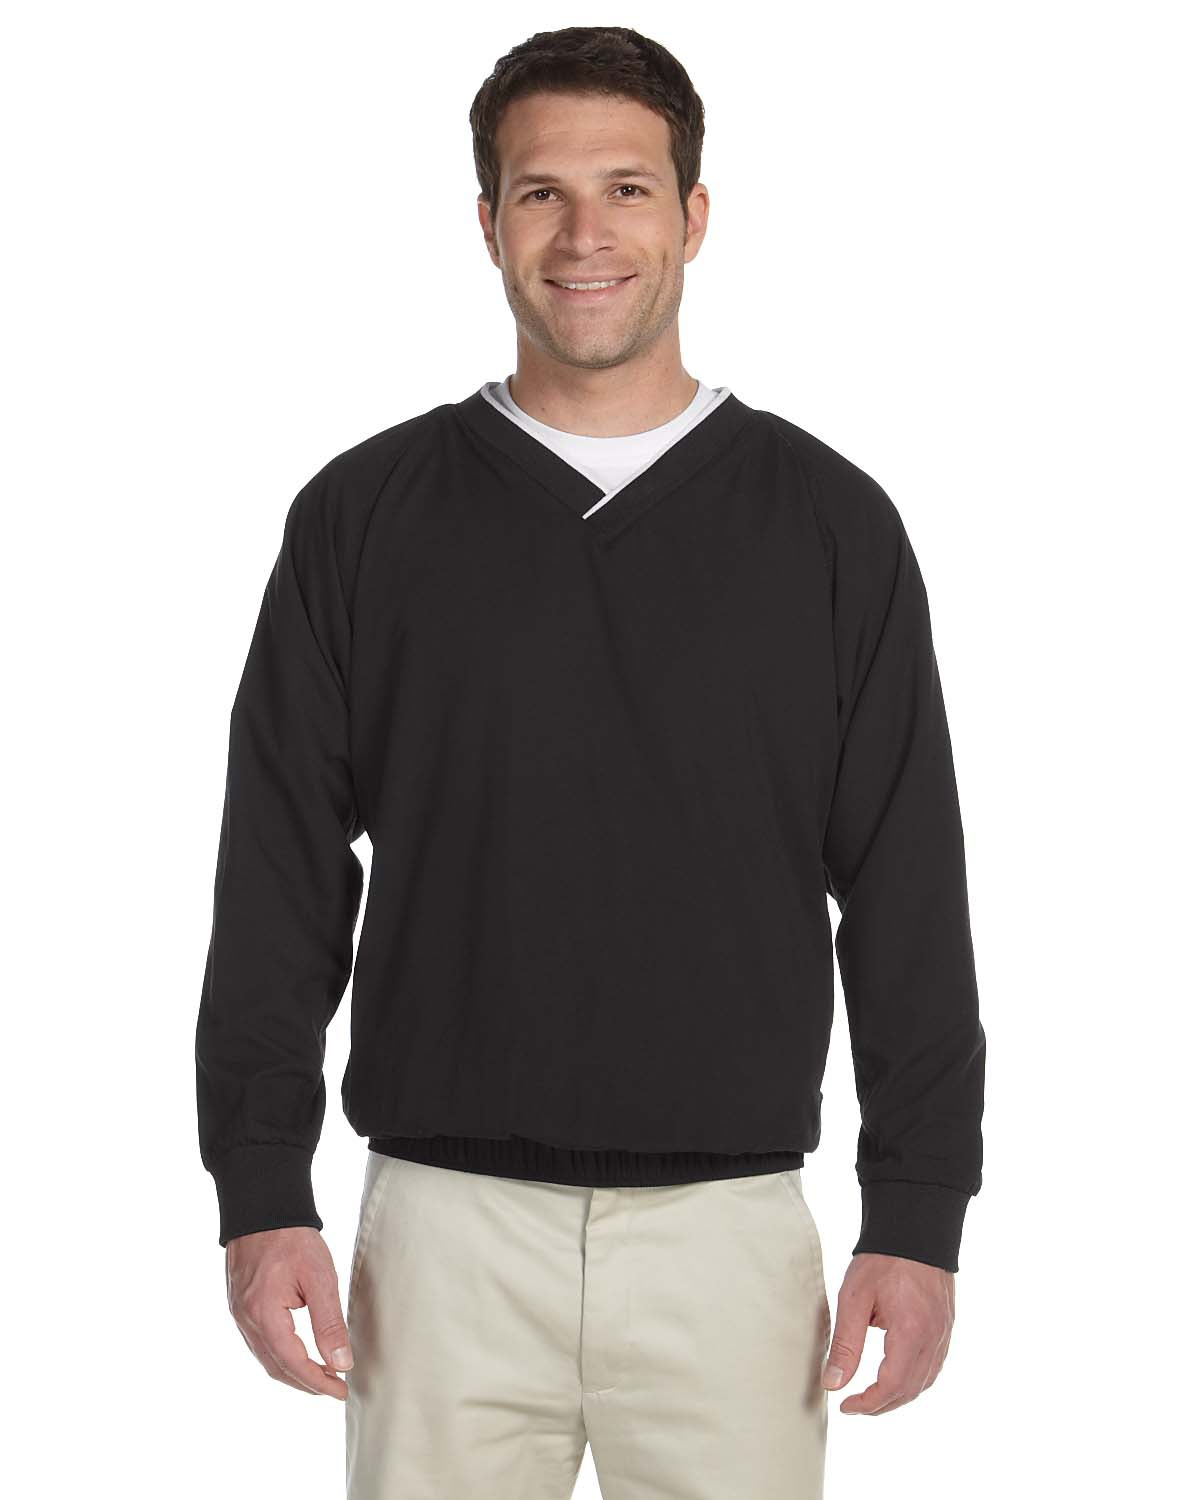 Free shipping on men's half-zip pullovers and sweaters from your favorite brands at desire-date.tk Totally free shipping & returns.